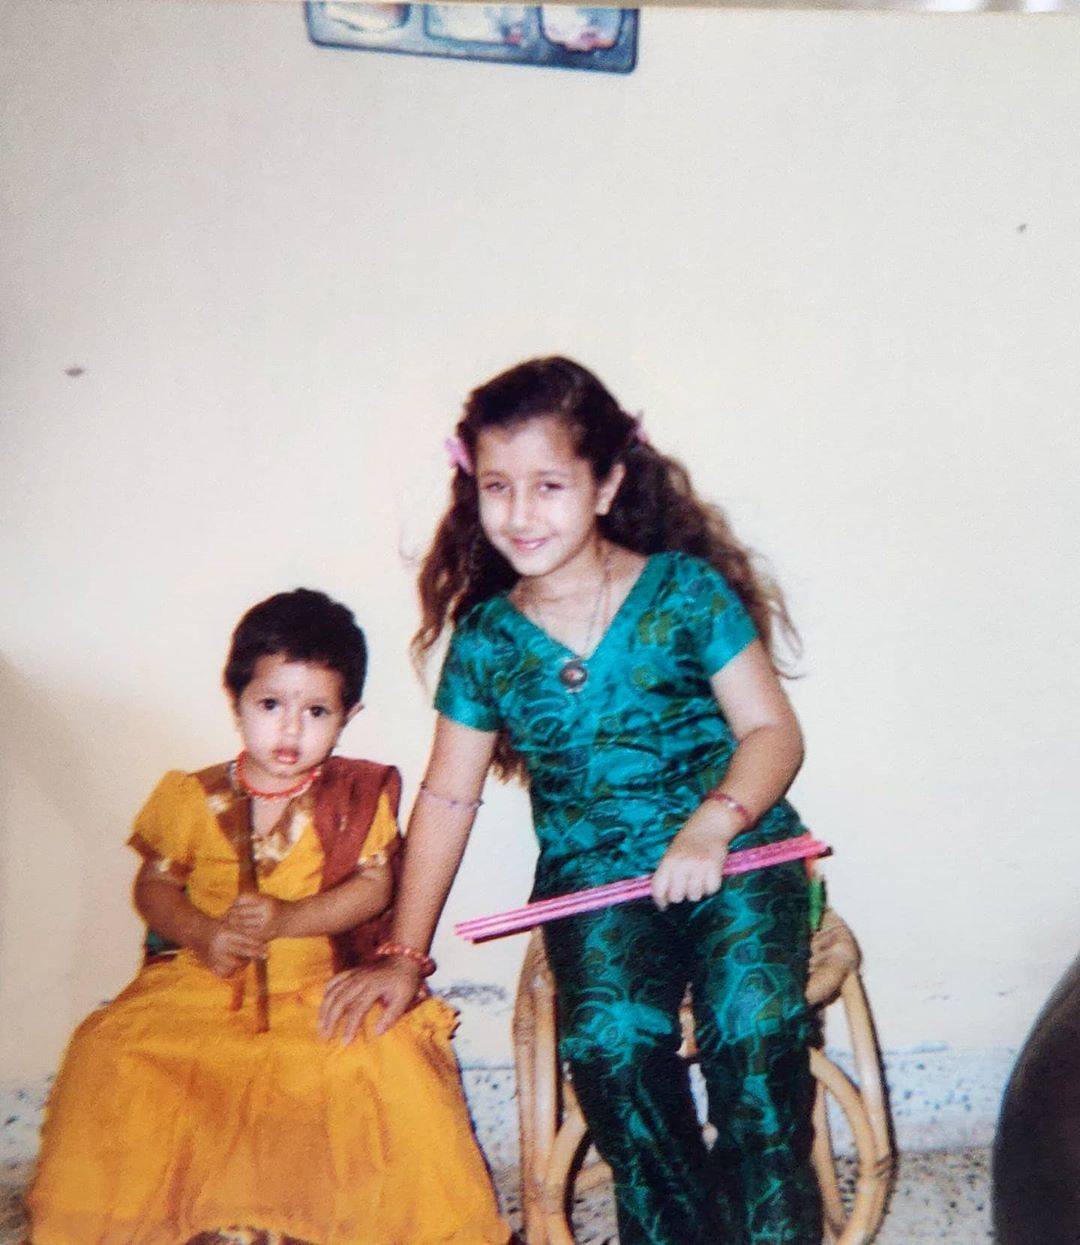 Jhanak Shukla and Damia Shukla childhood picture